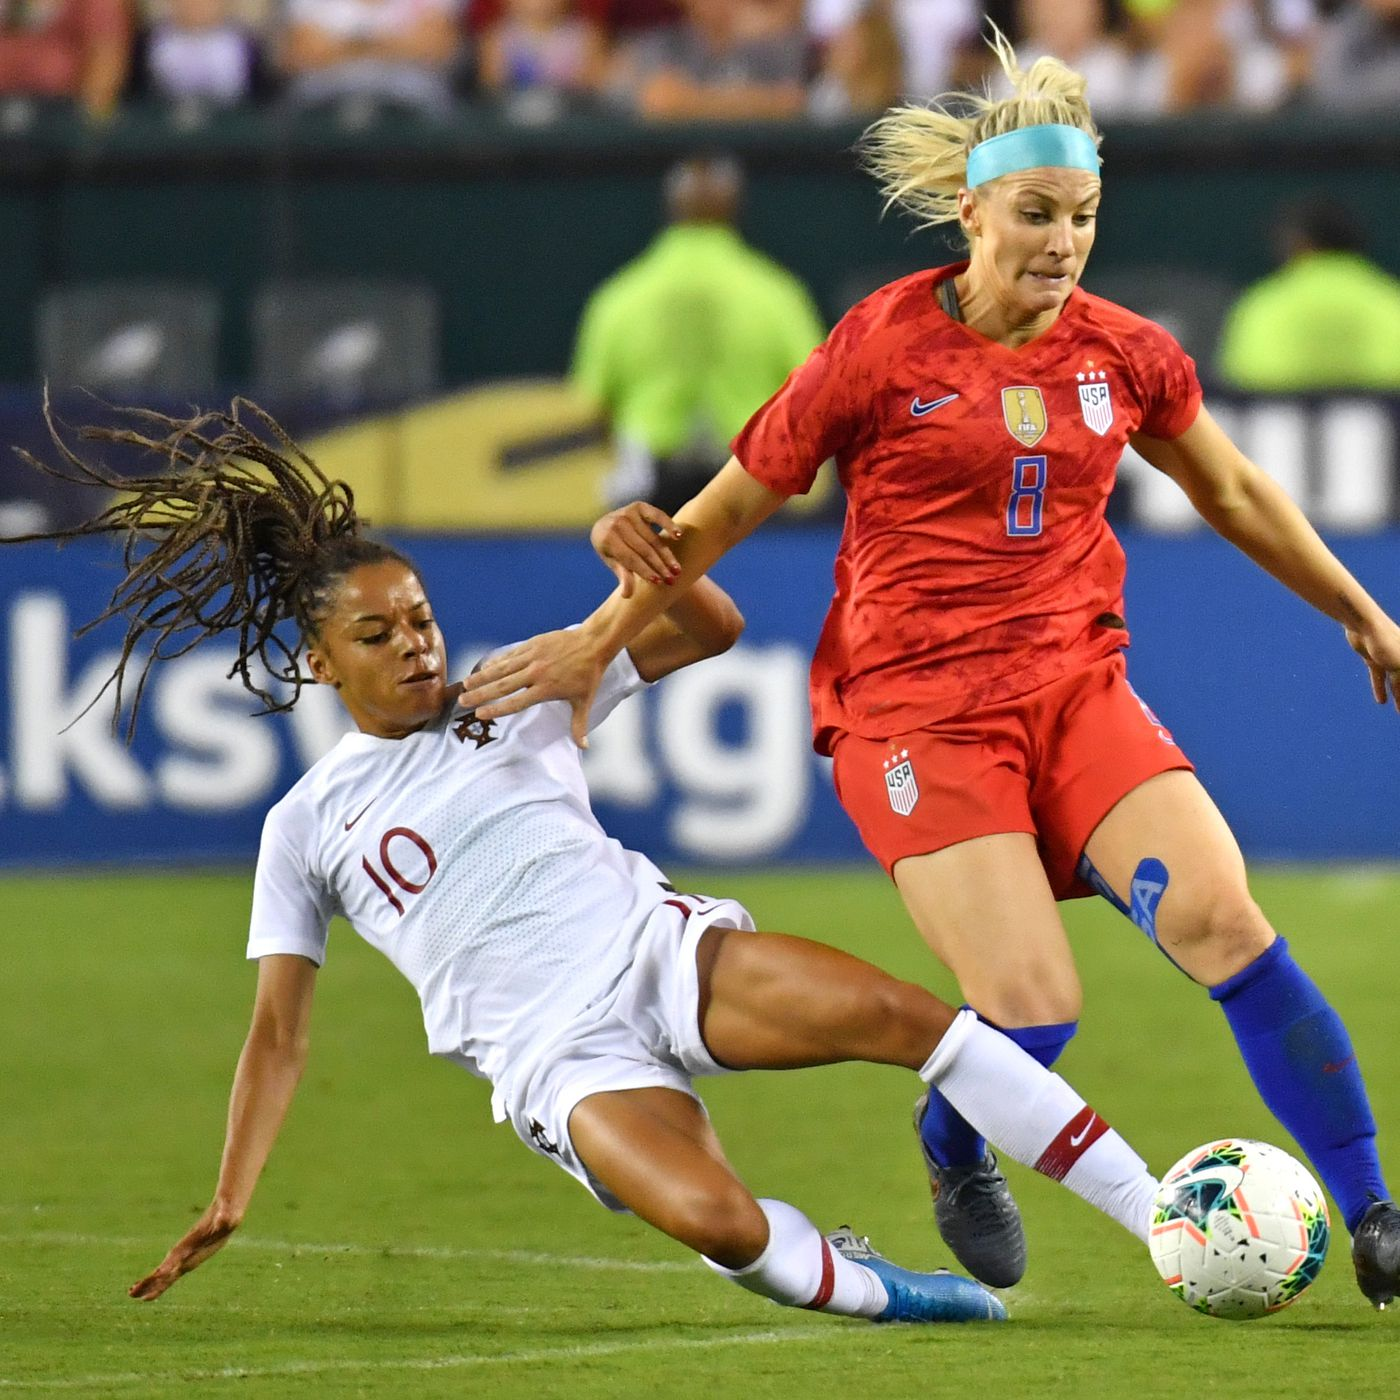 Uswnt Olympic Qualifying Kicks Off This Week With Two Red Stars Hot Time In Old Town